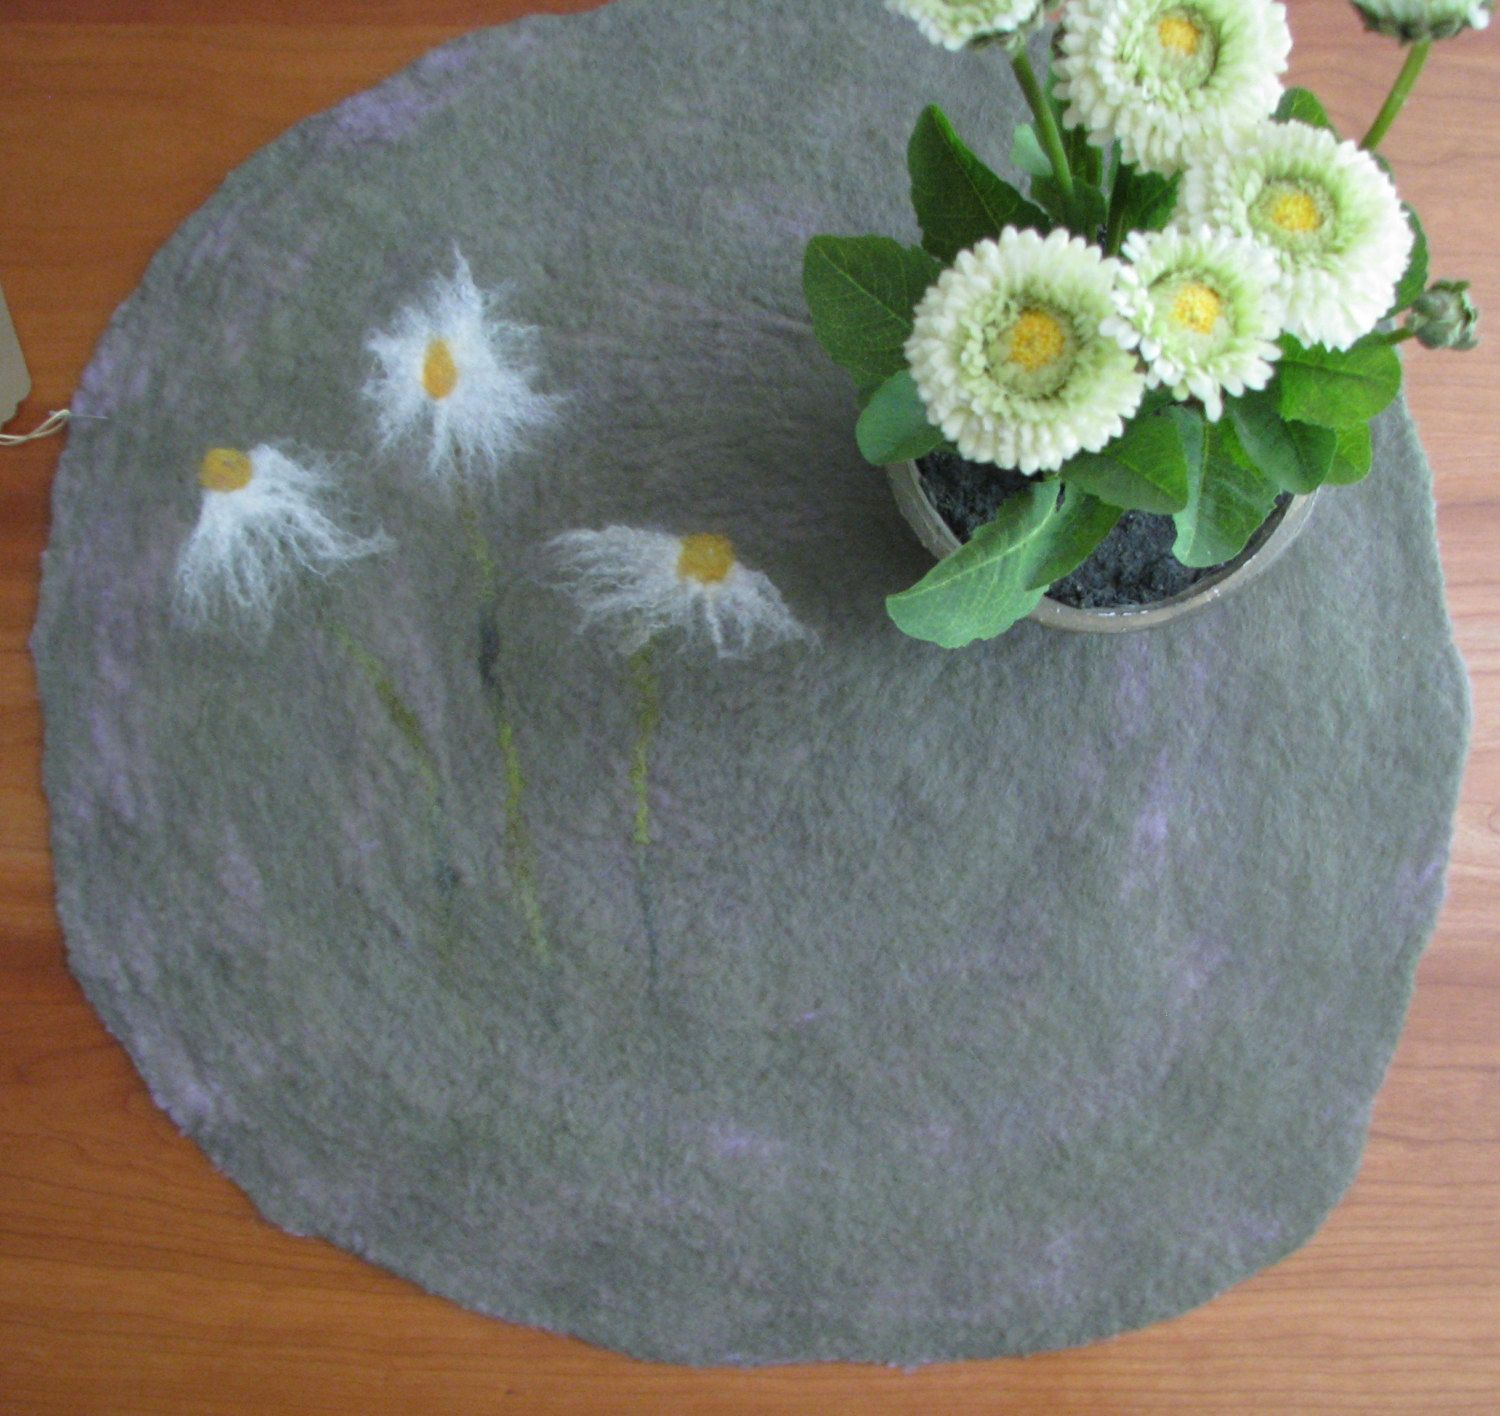 Daisy Circular Table Runner Felted Sage Green Table Mat With White Daisies  By AmberGoesViolet On Etsy